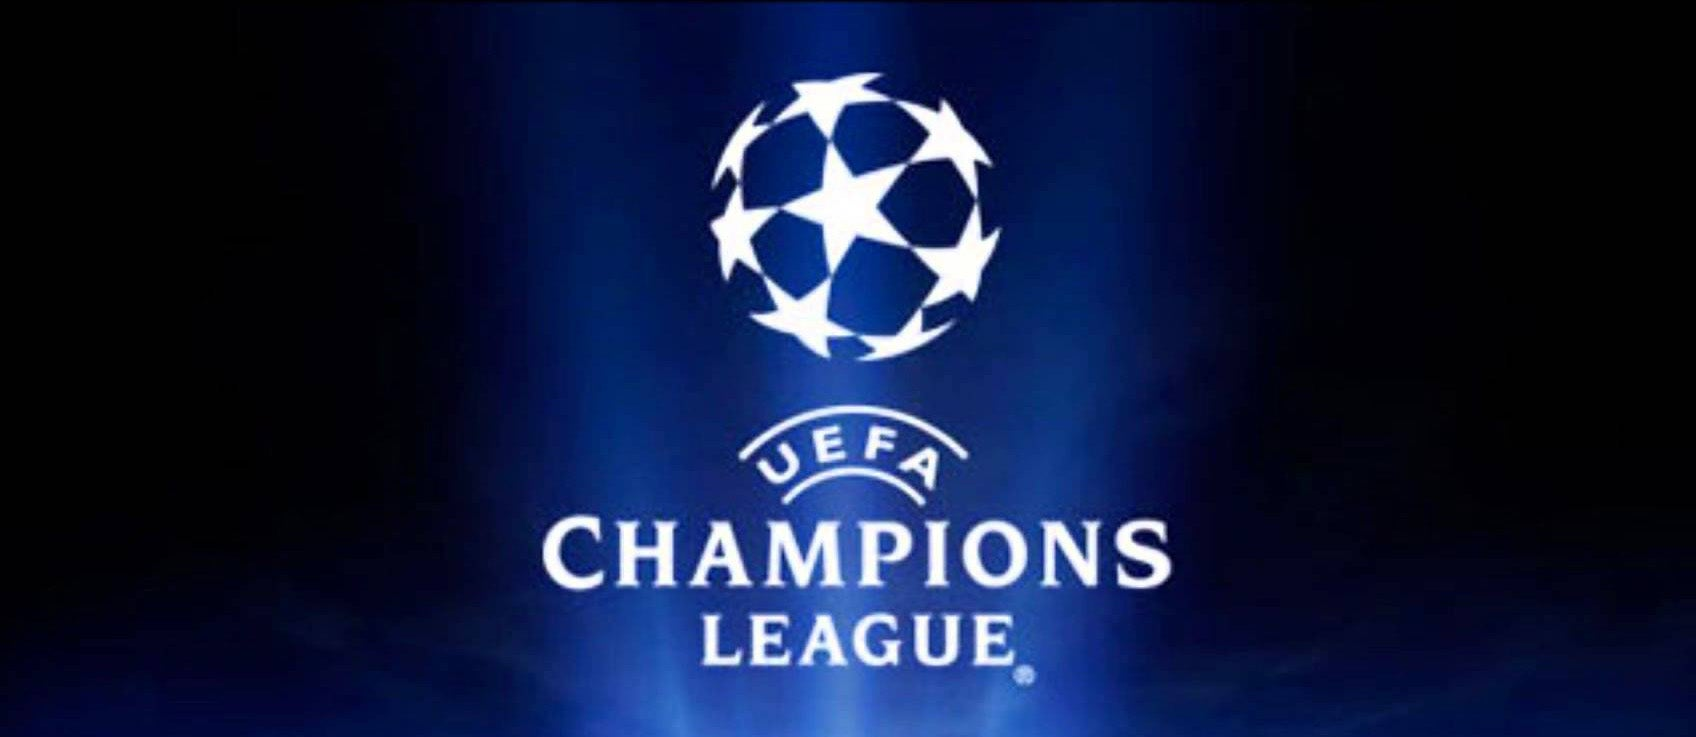 FINAL UEFA CHAMPIONS LEAGUE: R. MADRID-AT. MADRID.